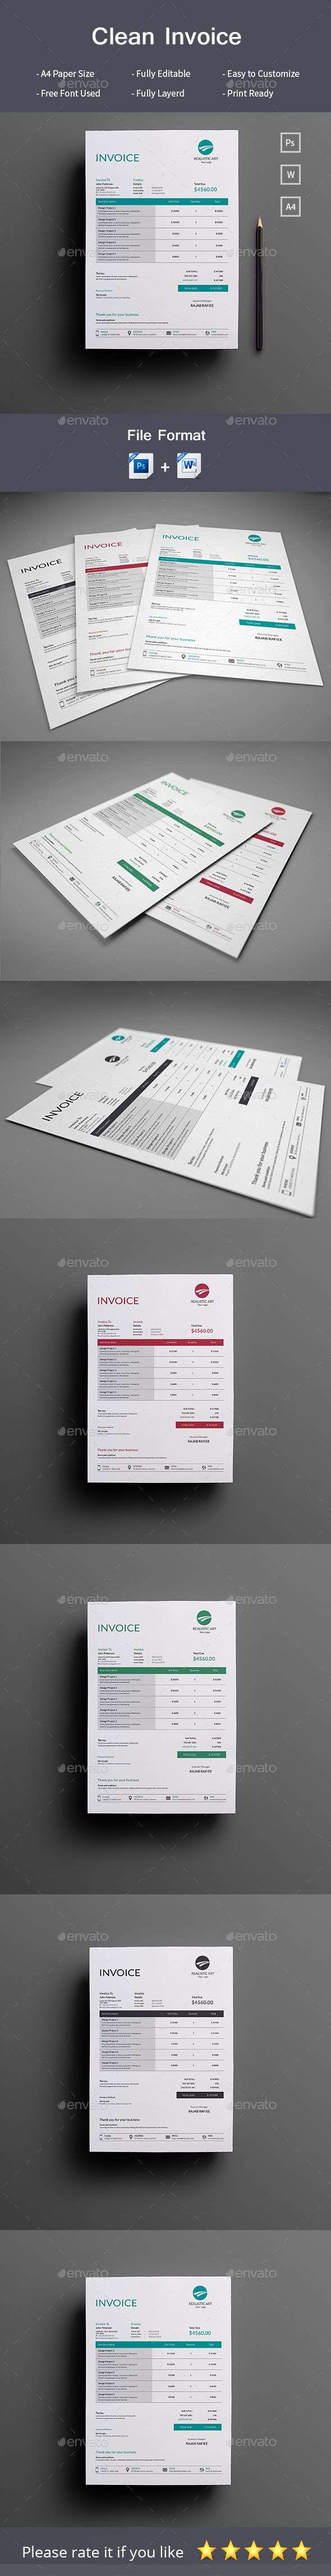 #Invoice - #Proposals & Invoices #Stationery Download here:  https://graphicriver.net/item/invoice/20335925?ref=alena994